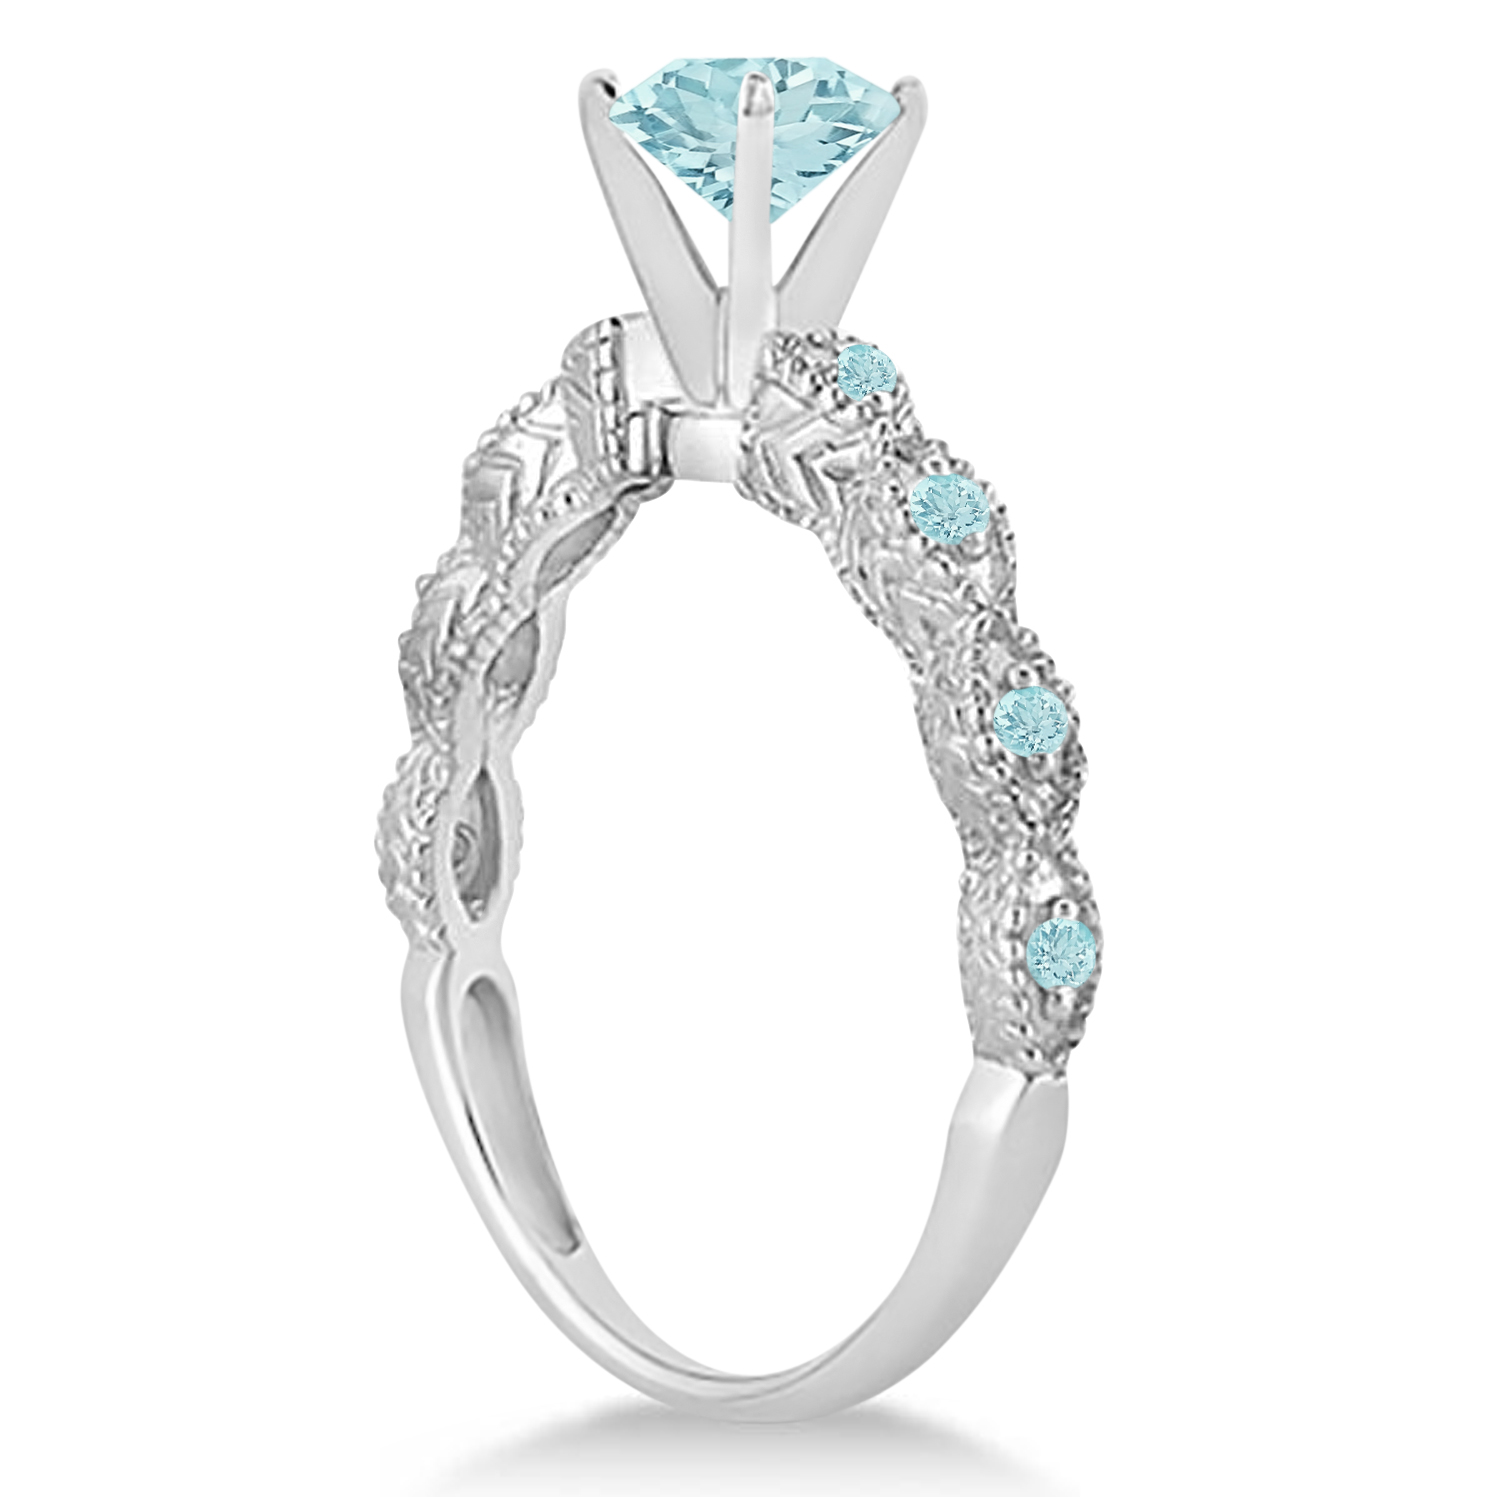 Vintage Aquamarine Engagement Ring Bridal Set 14k White Gold (1.36ct)